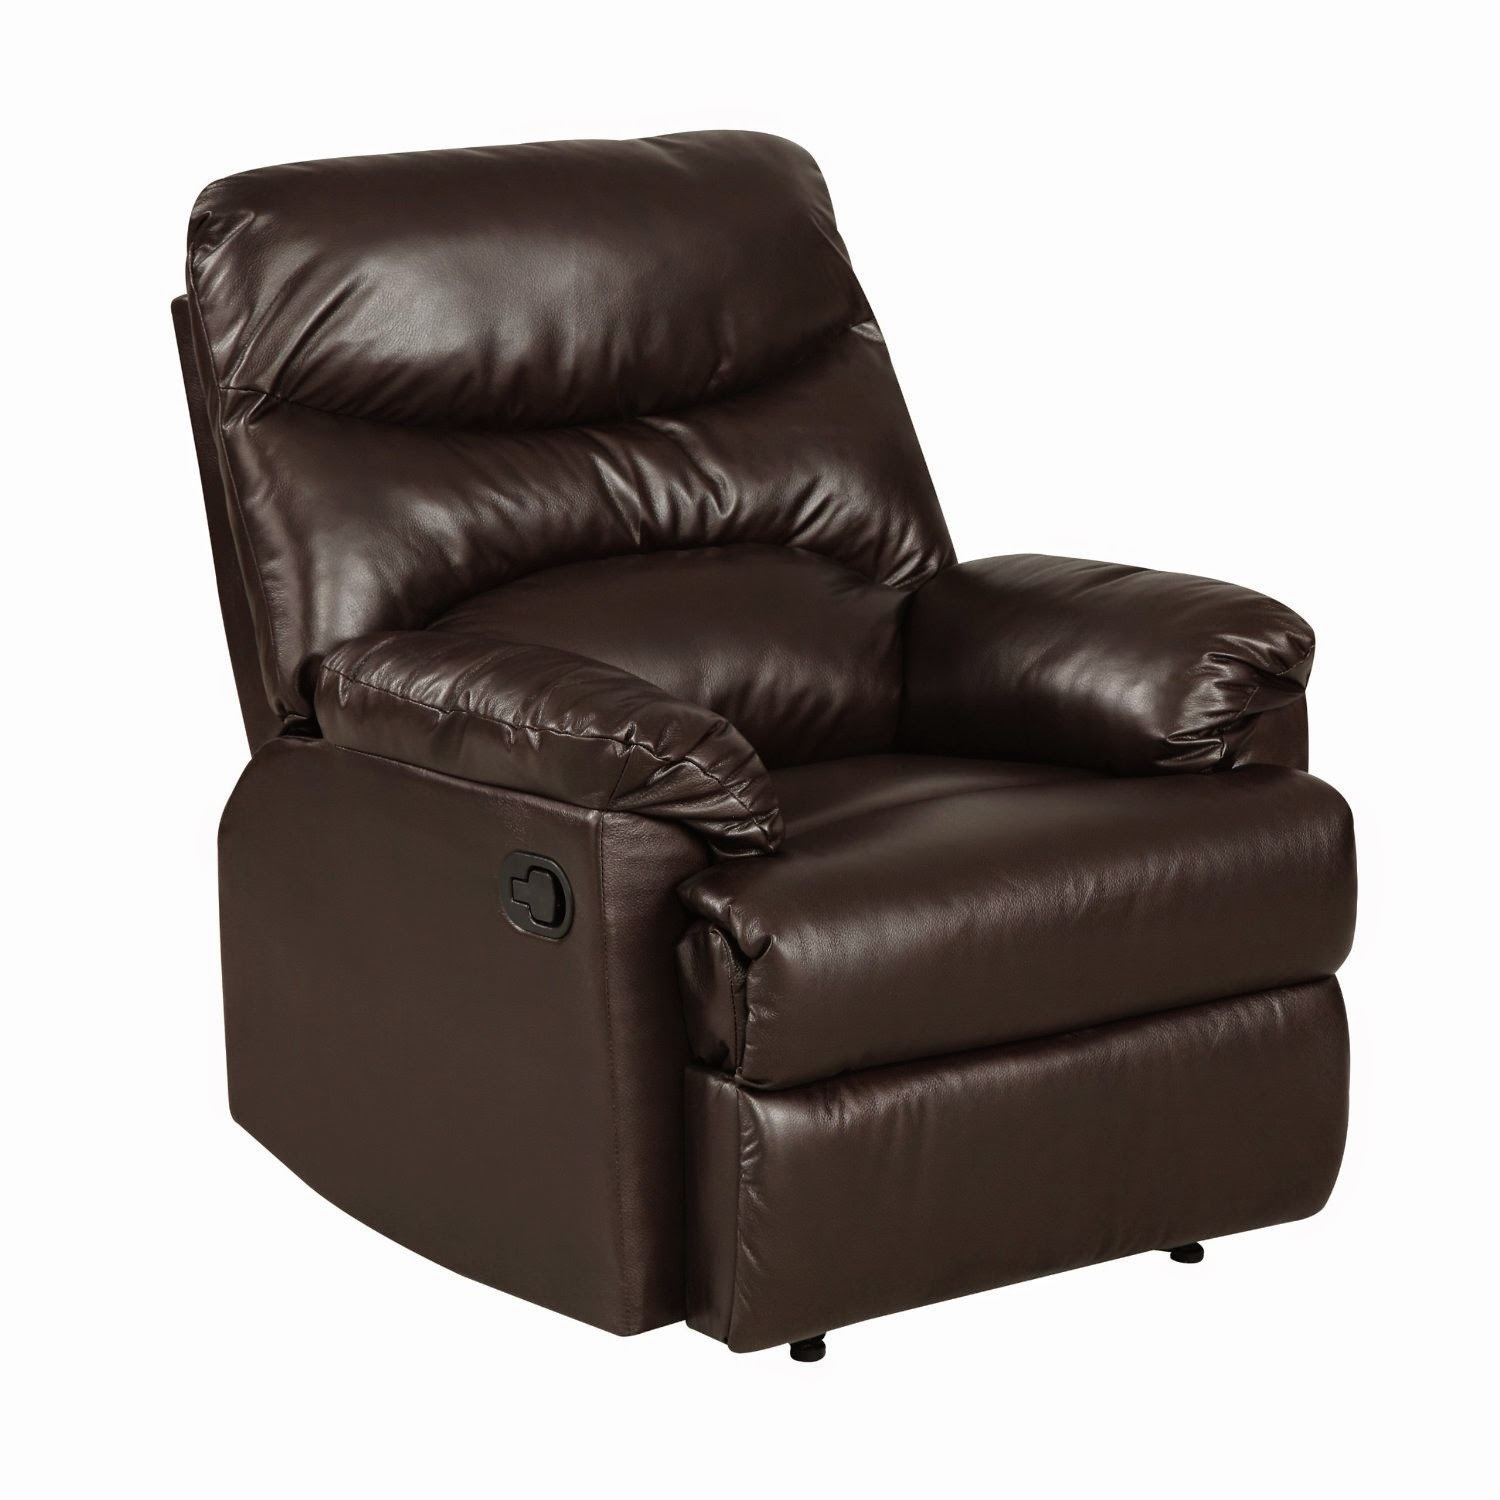 Cheap Recliner Sofas For Sale Black Leather Reclining: Reclining Sofas For Sale Cheap: Small Reclining Sofas